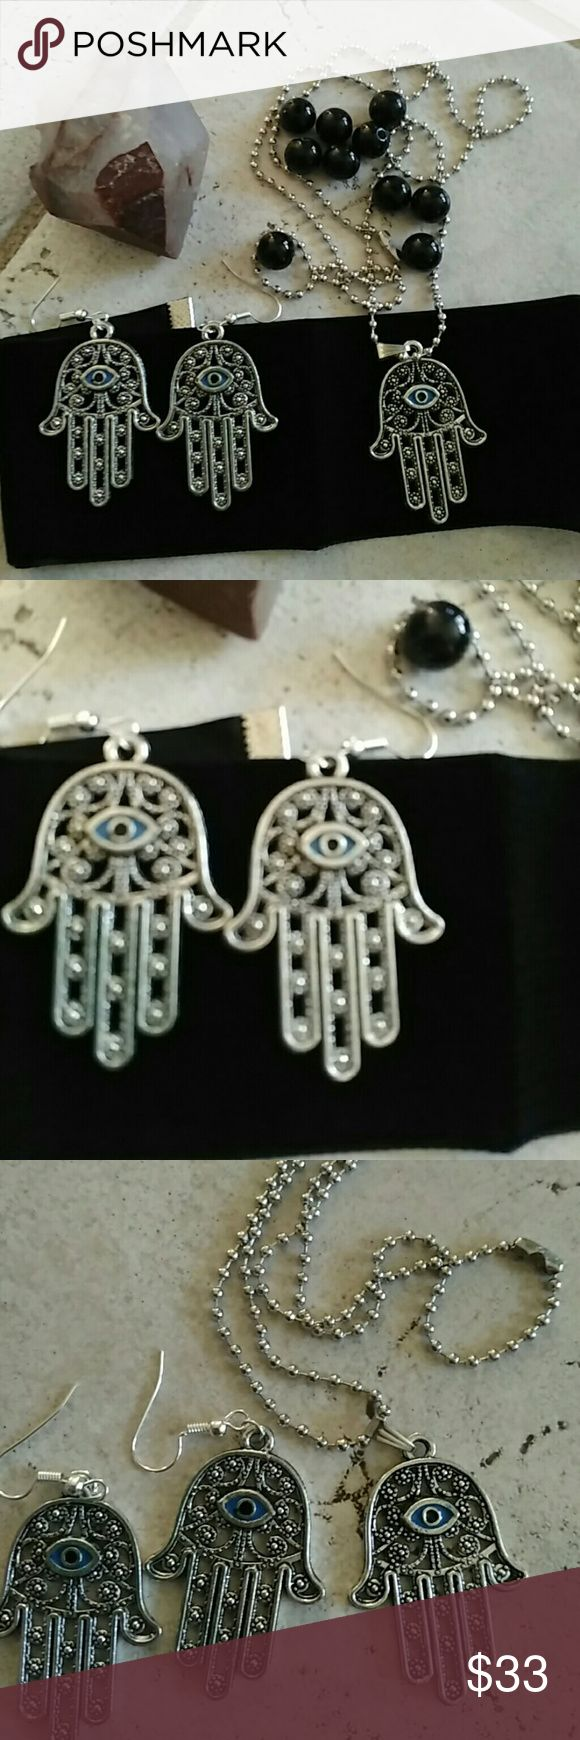 Hamsa protection jewelry set tibet silver beauty Beautiful hamsa items jewelry 2 set earrings and 1 ball point necklace 20 inch chain  Brand new bigger then quarter size  Free crystal rose quartz w purchase   Wicca wiccan hamsa evil eye tailsmen protections triple moon jewelry boho jewelry Asian Africa Egypt kawaii boutique Jewelry